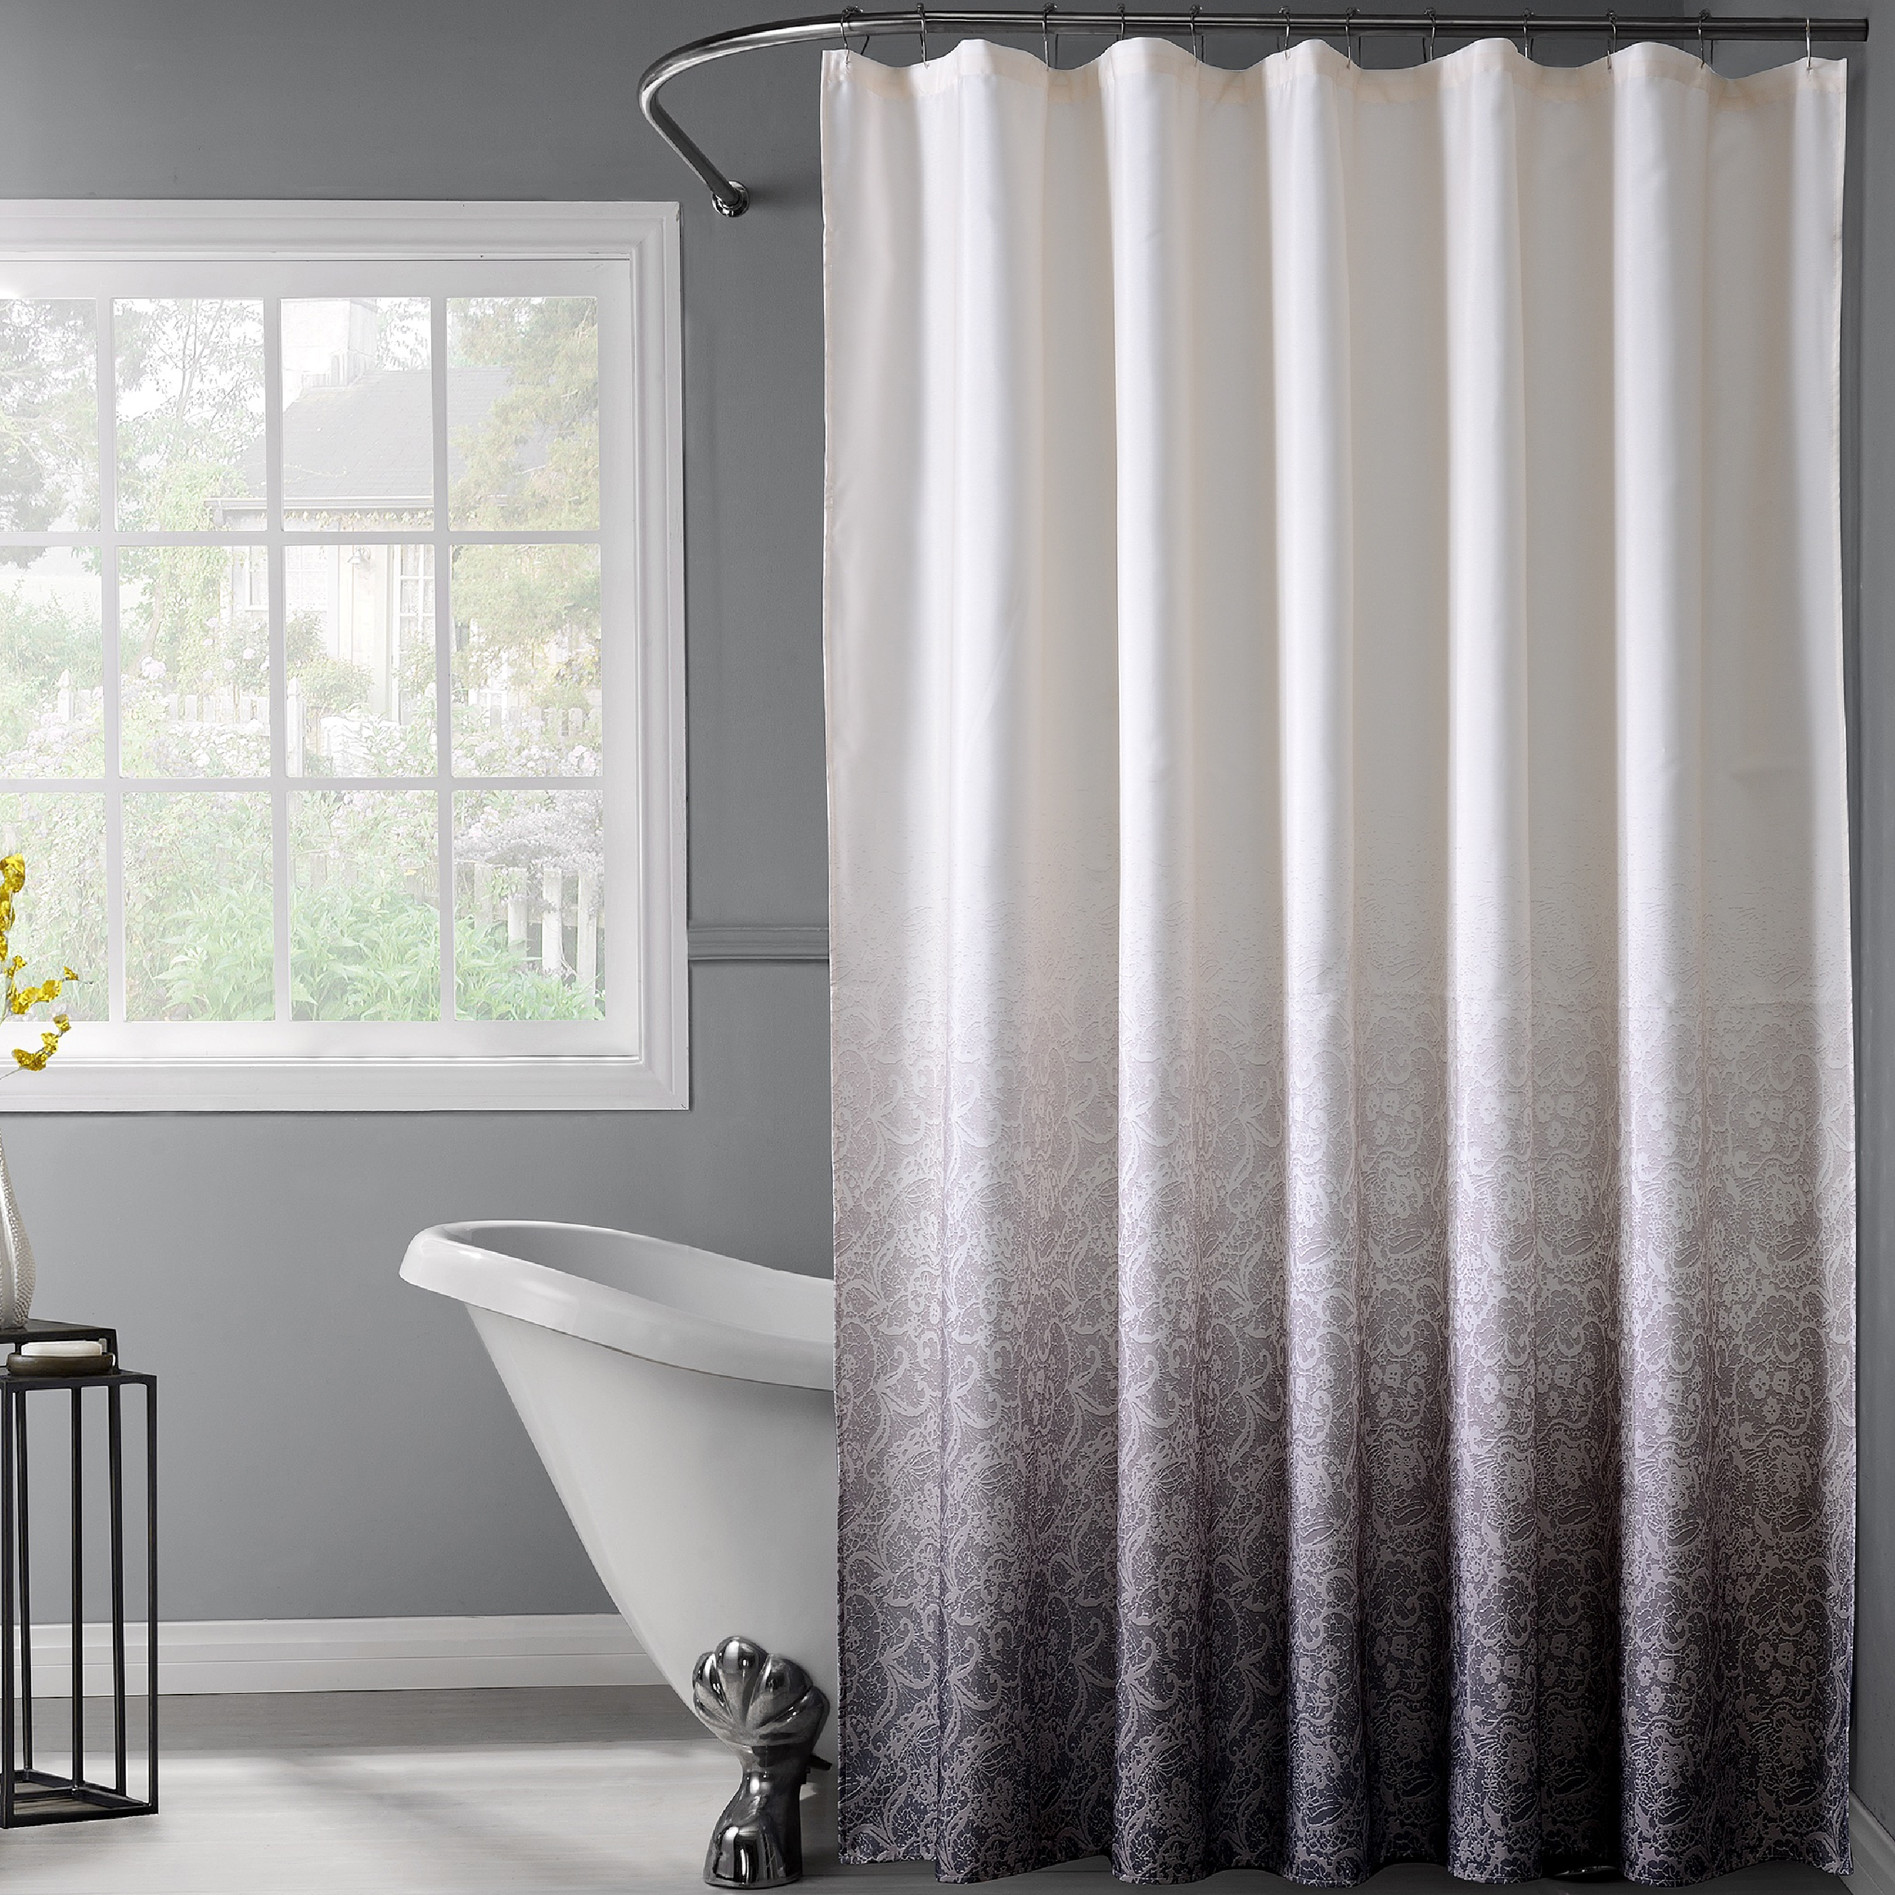 unusual-shower-curtains-all-also-lace-ombre-shower-curtain_elegant-shower- curtains.